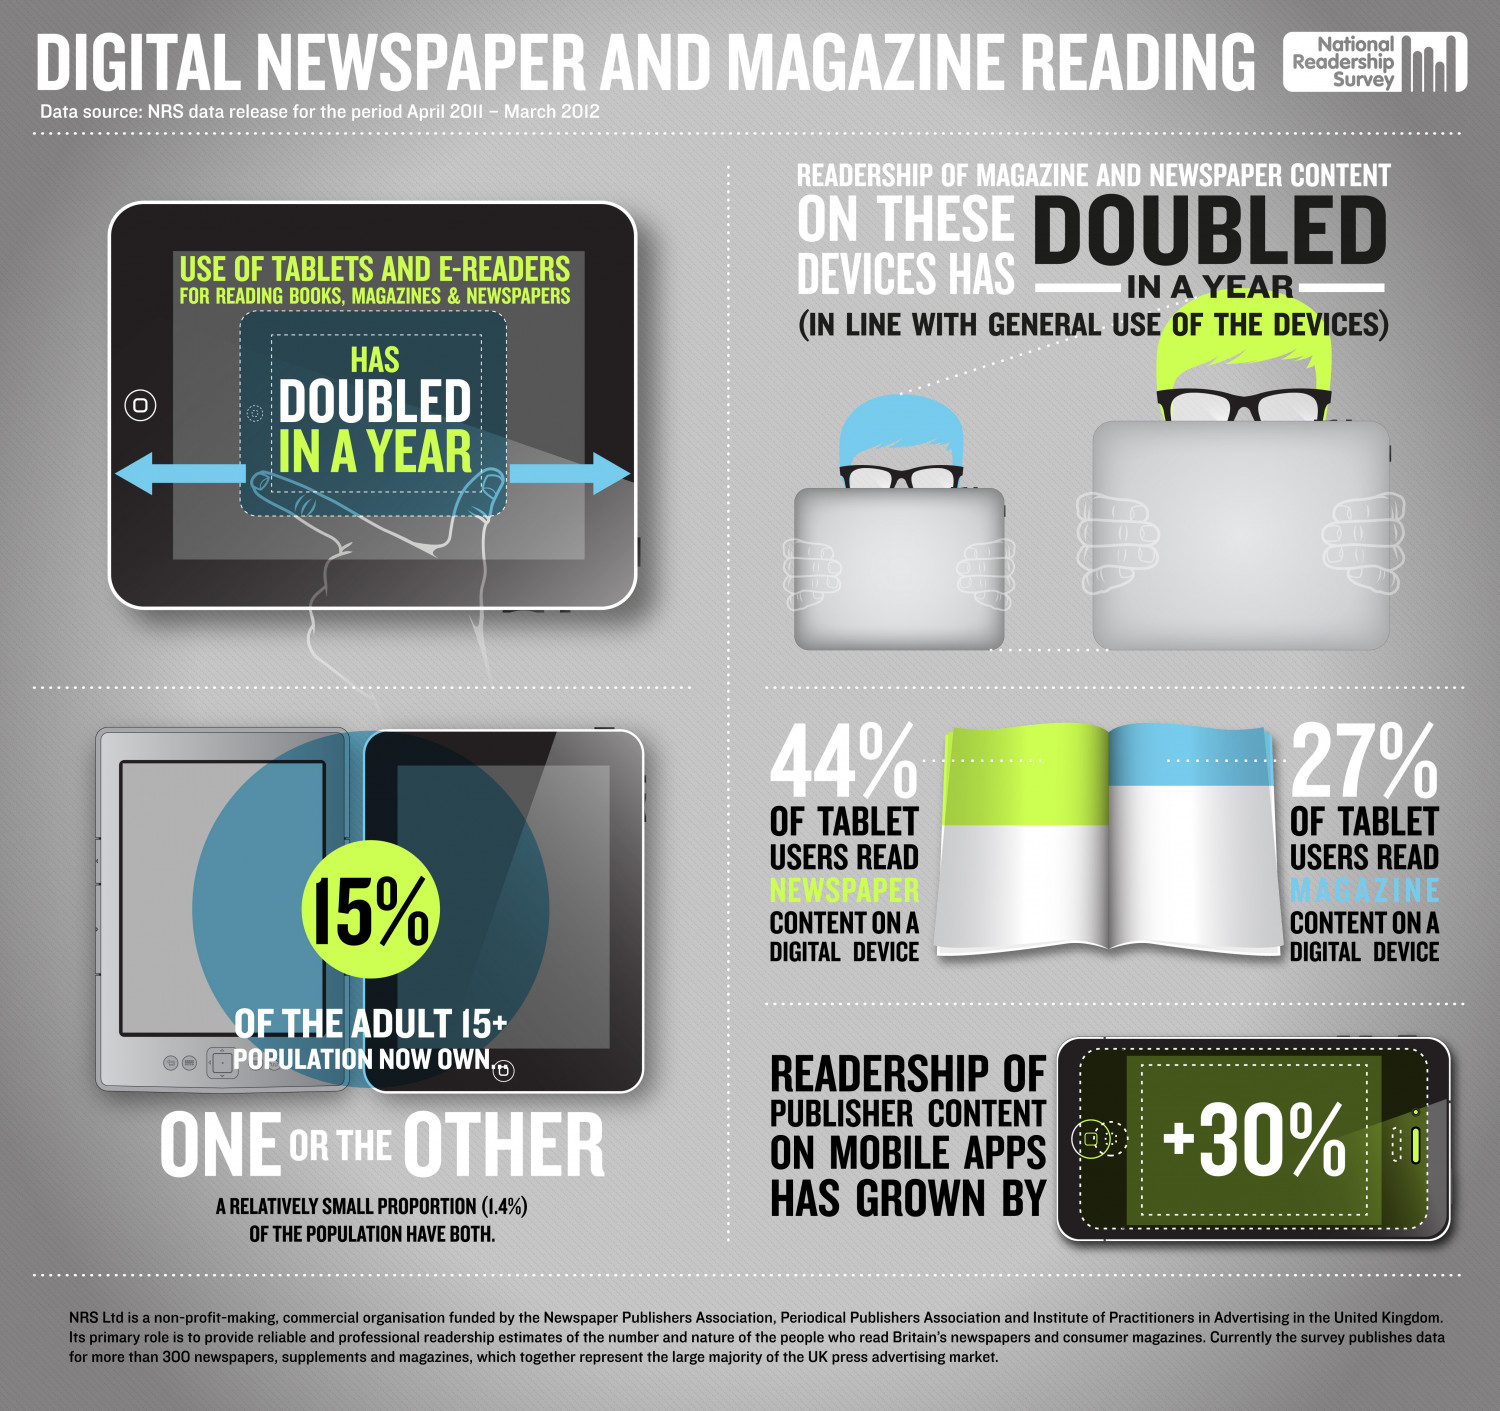 Digital Newspaper and Magazine Readership Infographic